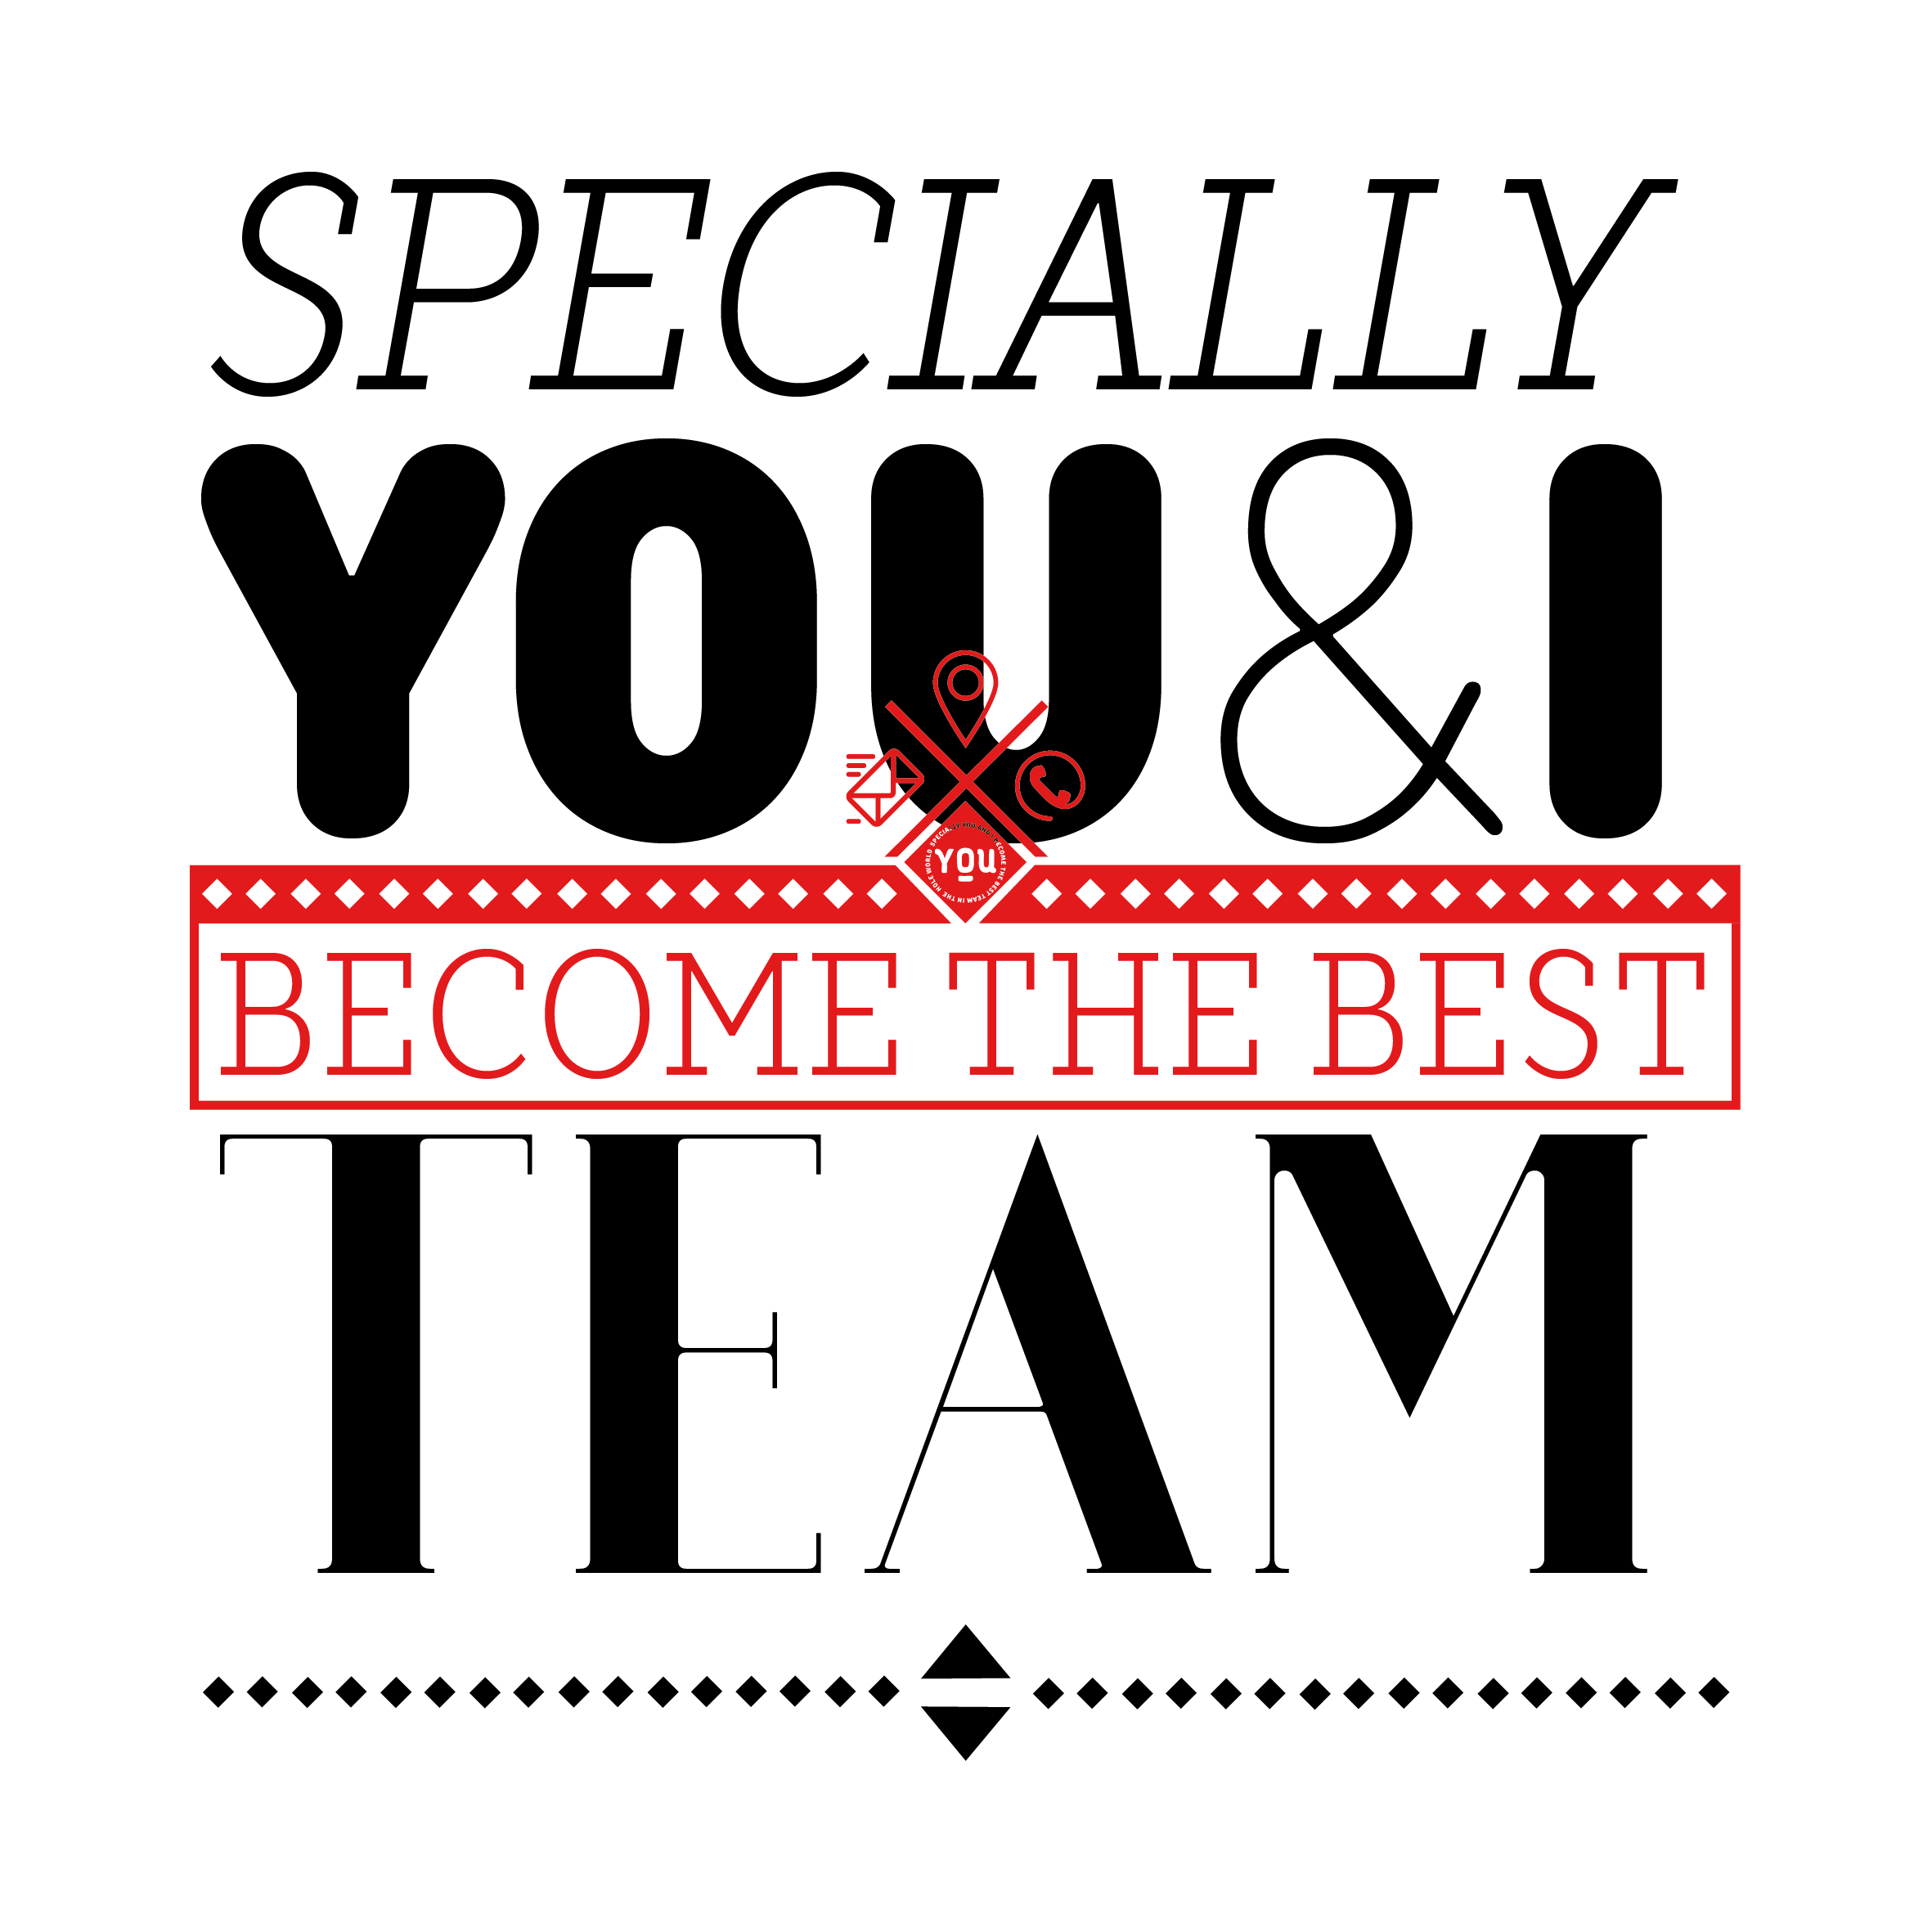 become the best